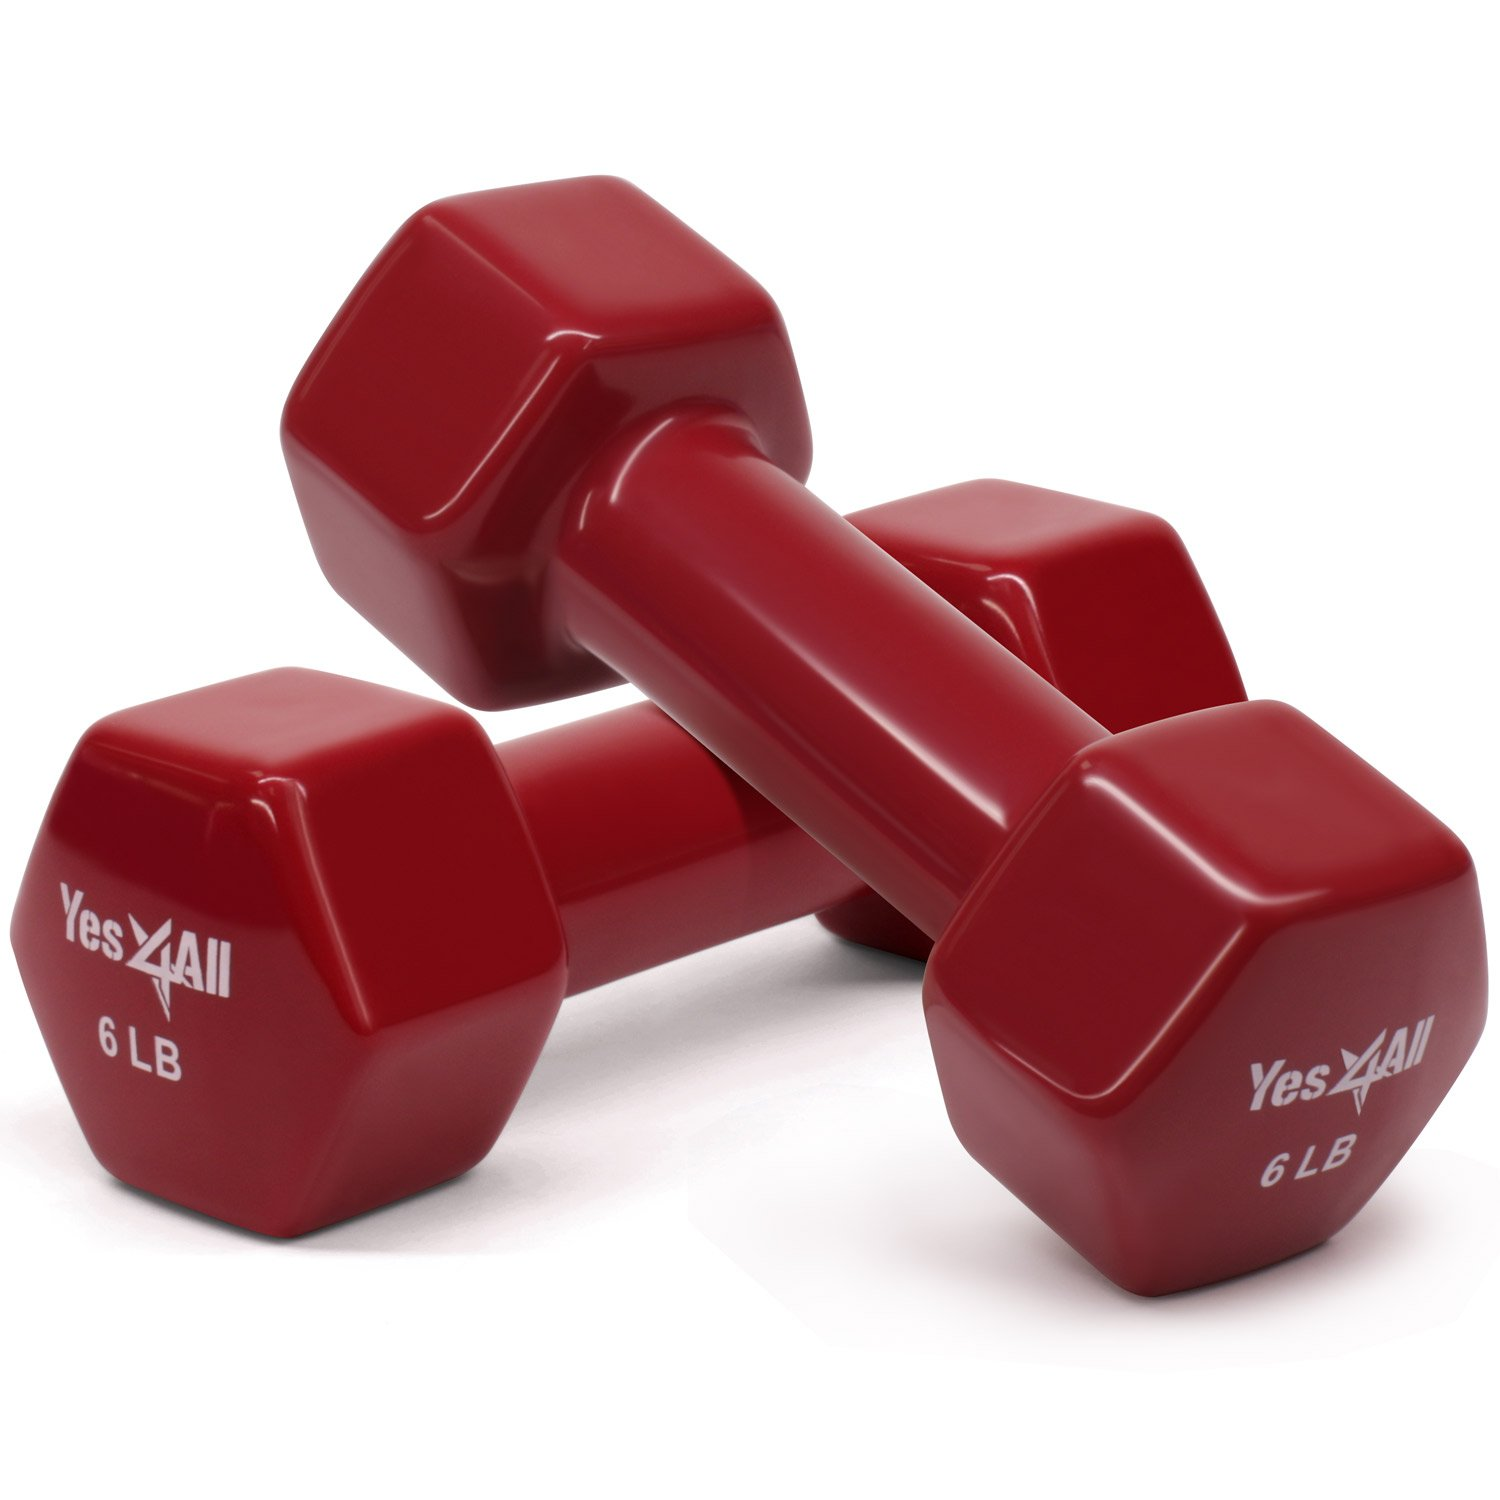 Yes4All Vinyl Dumbbell Set - 6 lbs Dumbbell Hand Weights (Dark Red, Set of 2)